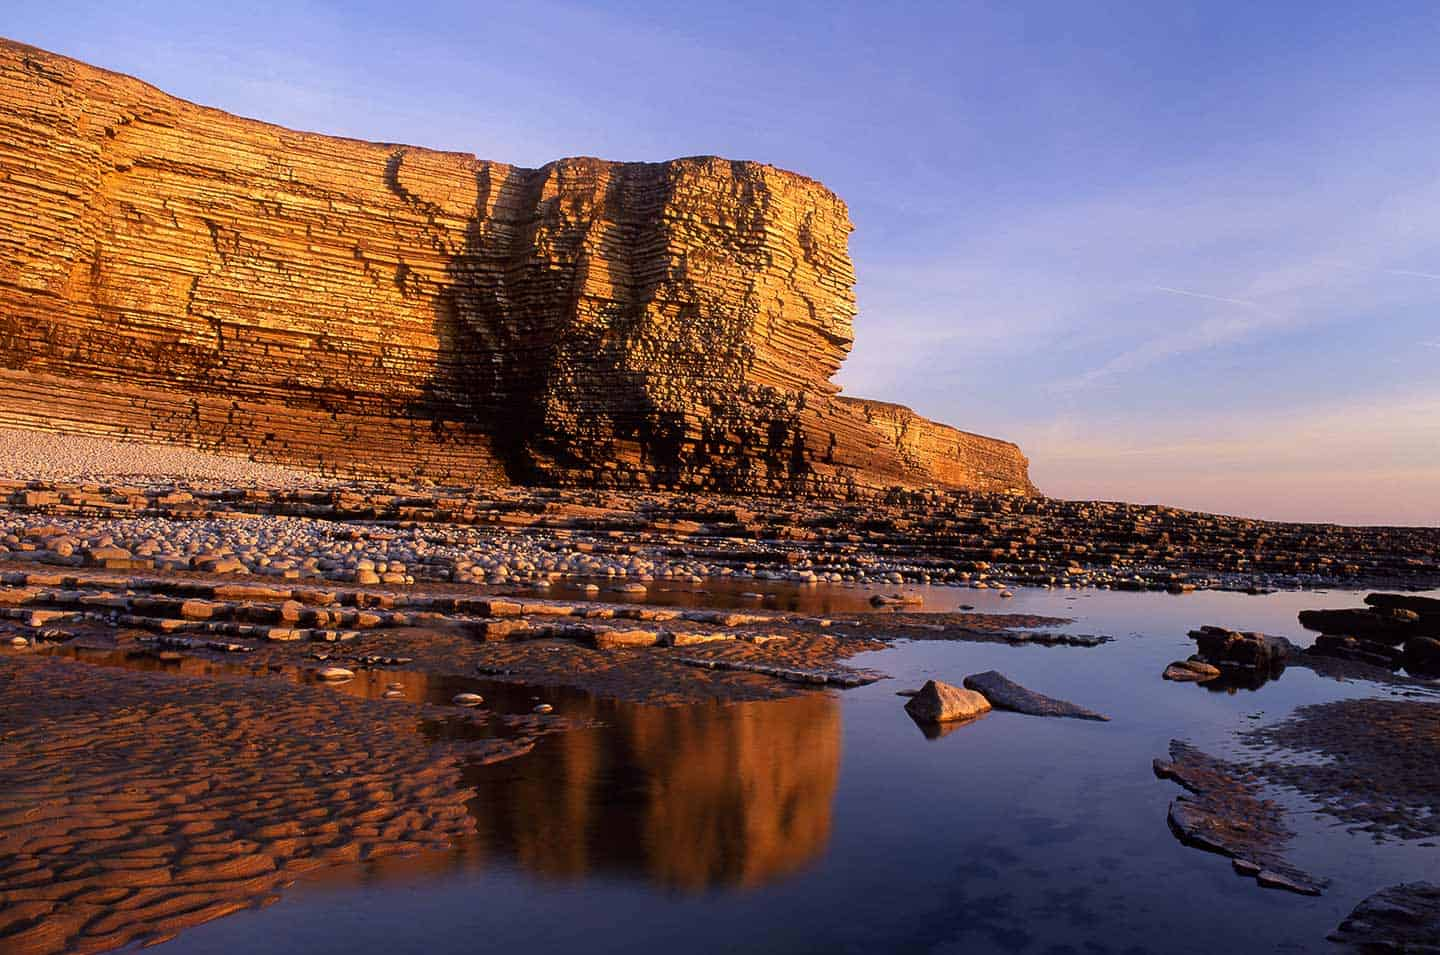 Image of Nash Point headland in the Vale of Glamorgan